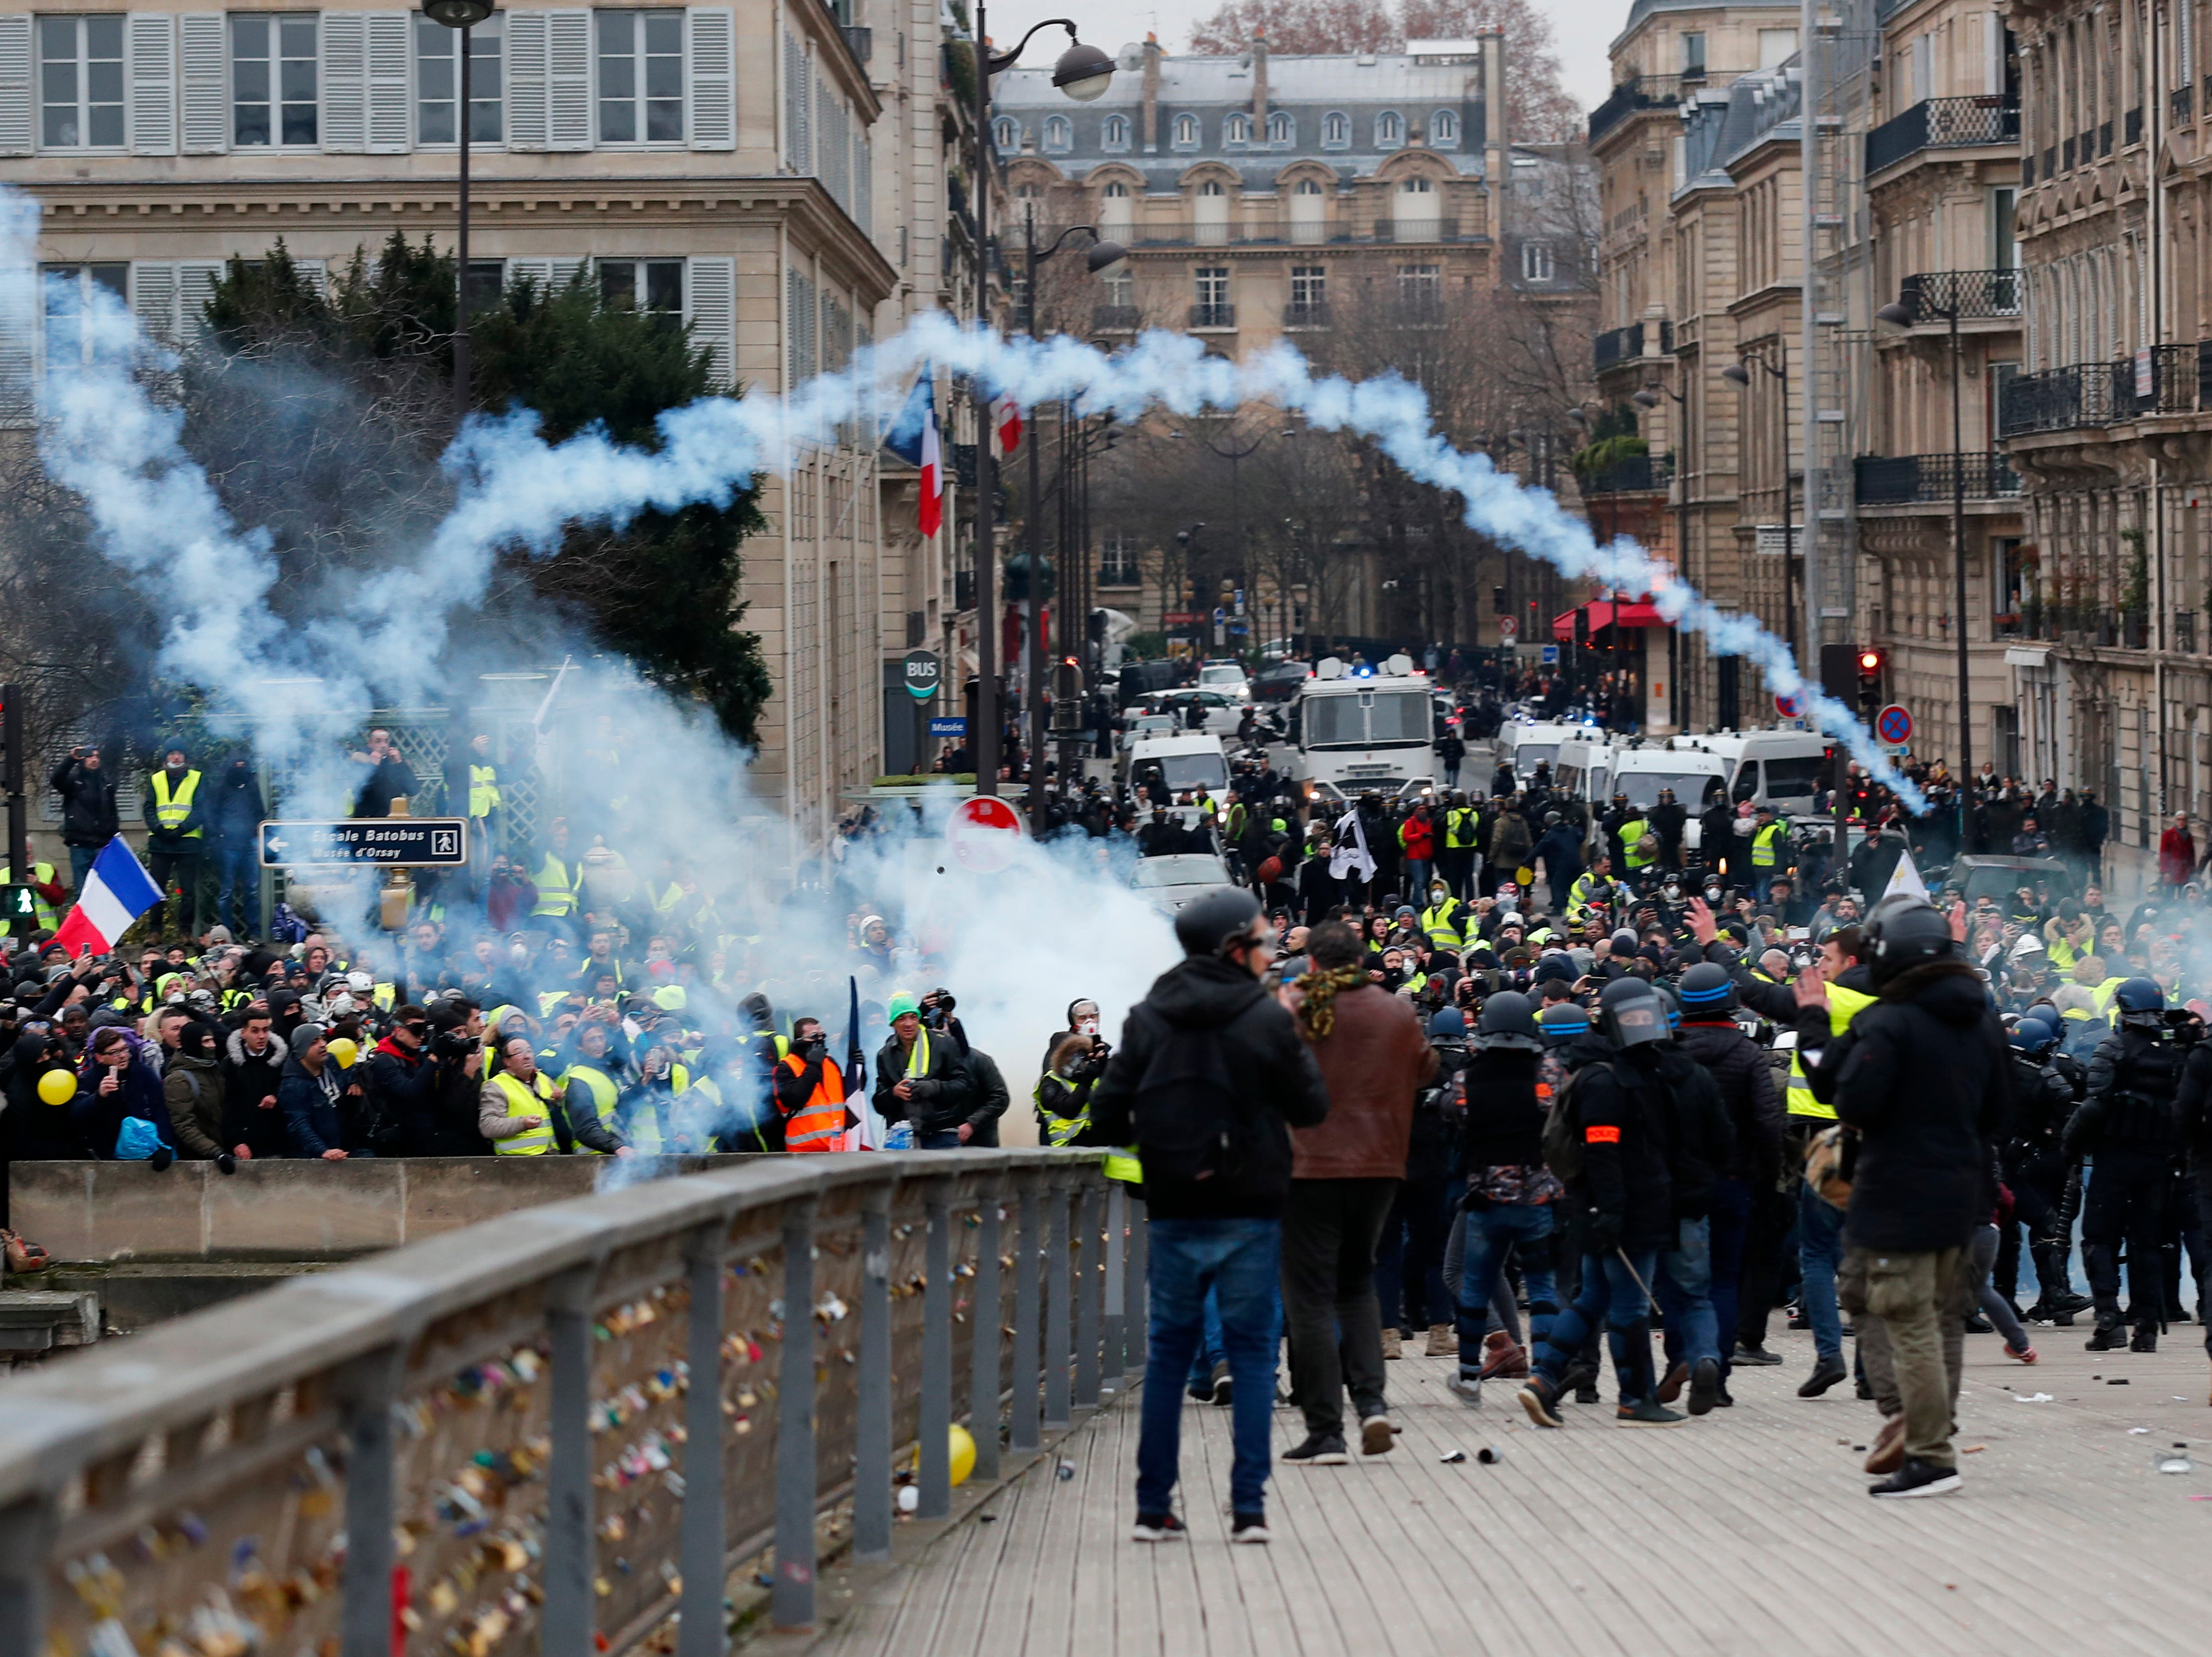 French riot police clashes with protesters as they try to cross the Seine river during a 'Yellow Vests' protest in Paris, France on Jan. 5, 2019.